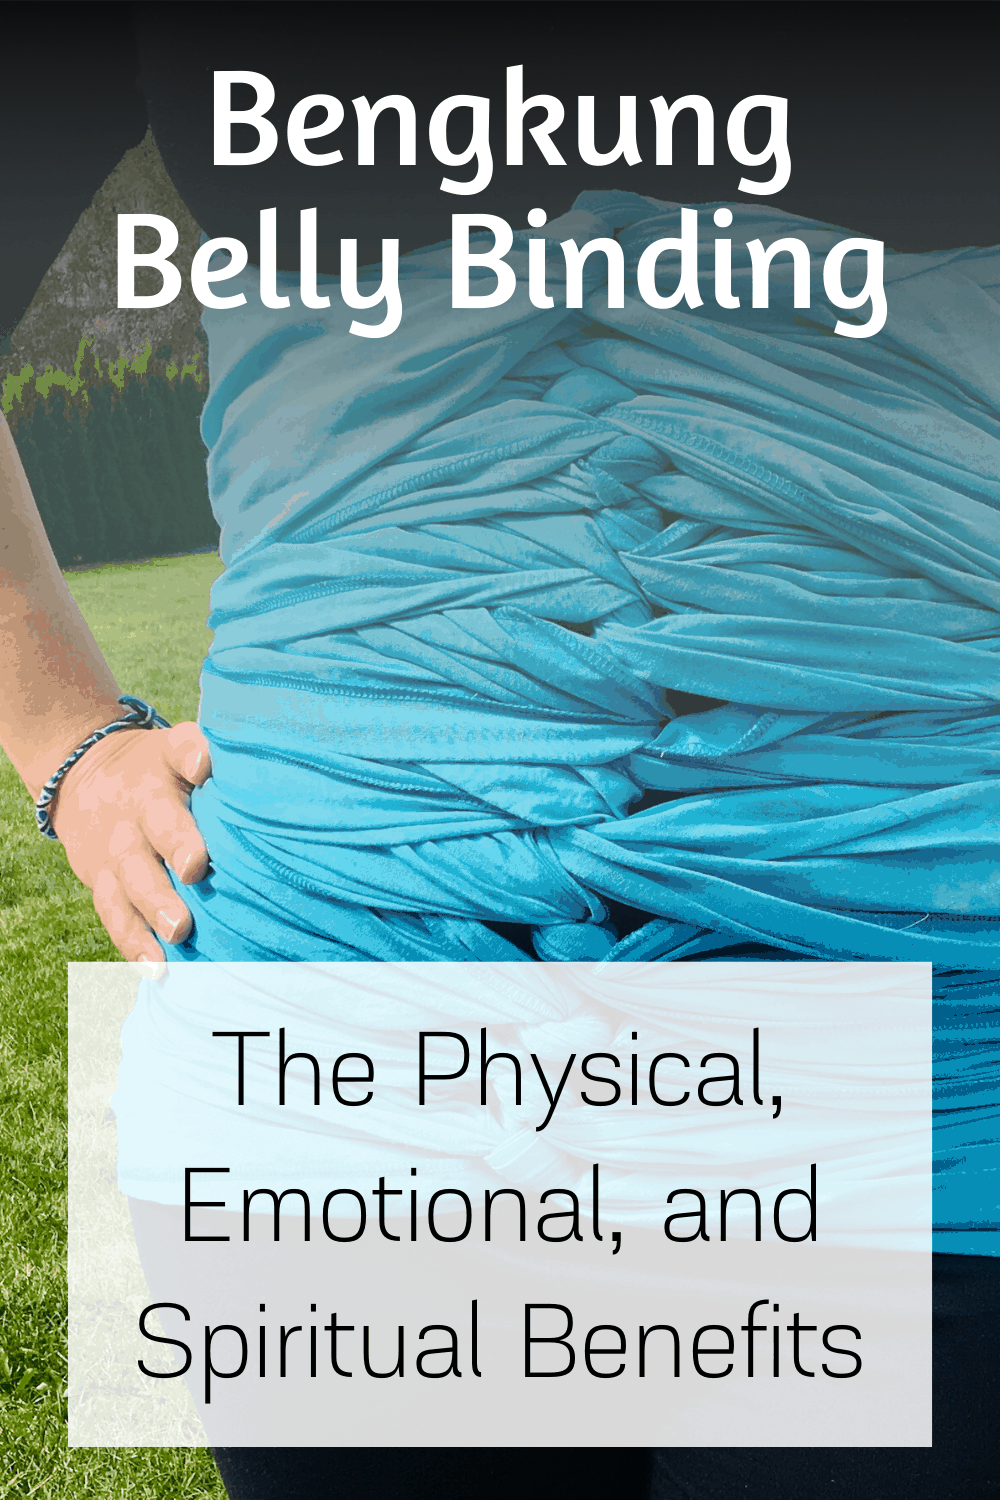 BengKung Belly Binding - The physical, emotional, and spiritual benefits